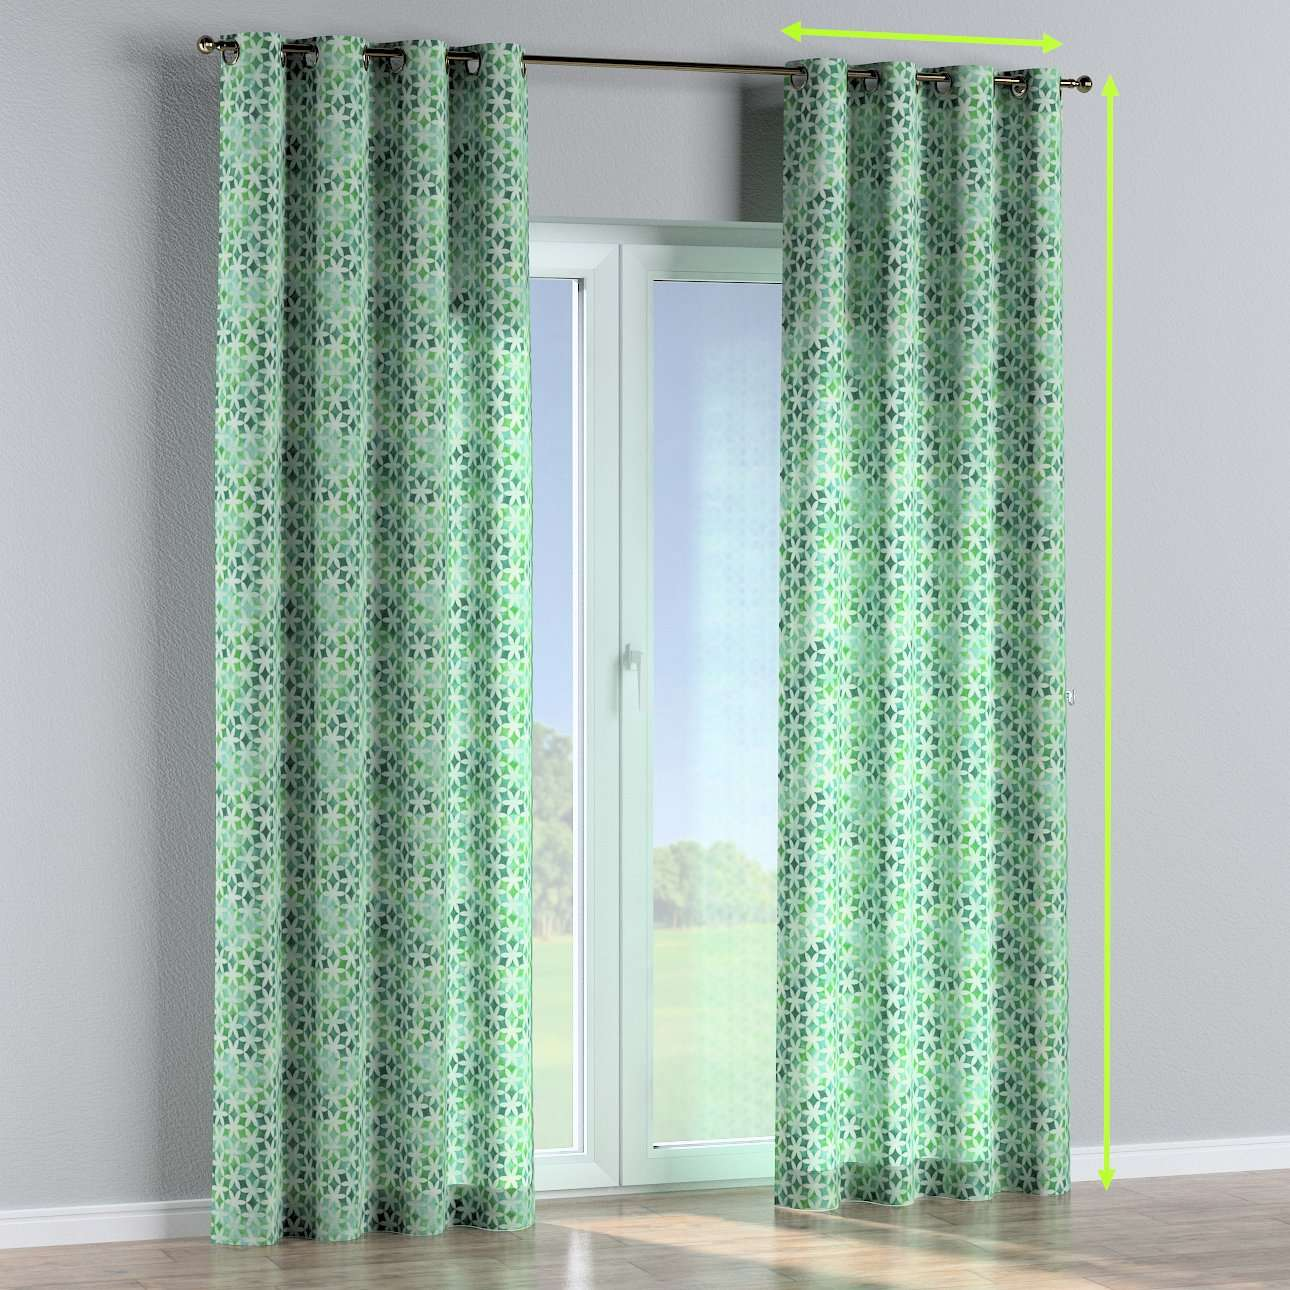 Eyelet lined curtains in collection Urban Jungle, fabric: 141-65